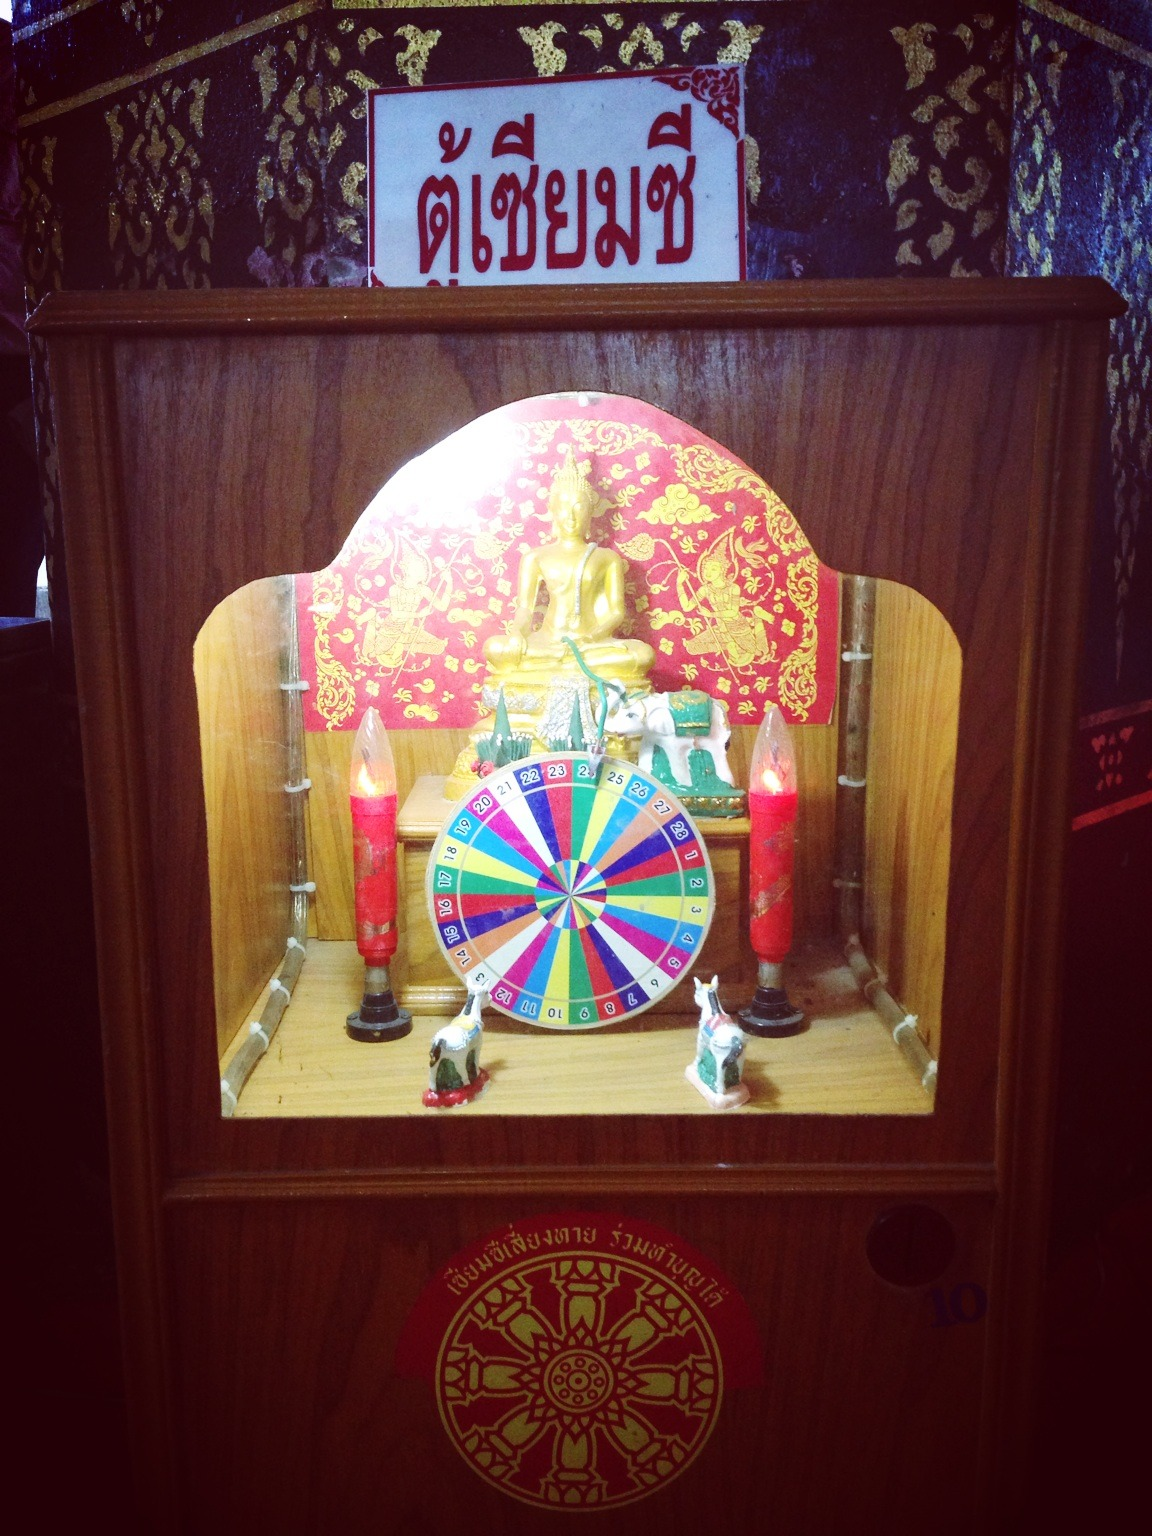 #BKKTrip #Day3 Insert coin 10BHT and you'll get instant fortune teller :D – View on Path.